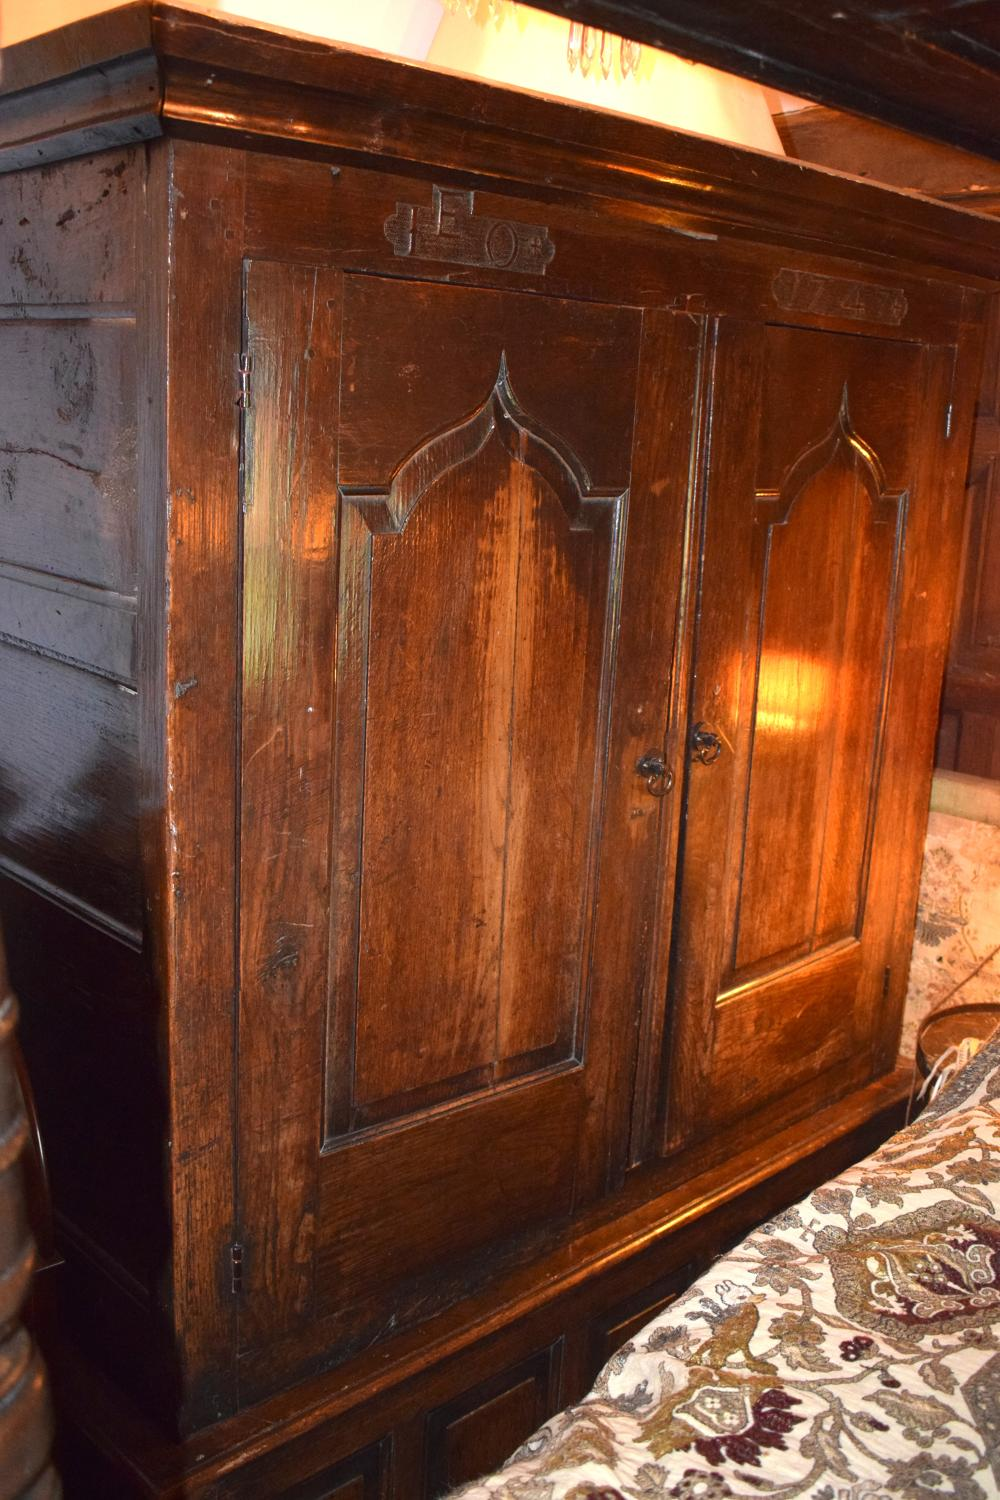 A 17th century oak cupboard